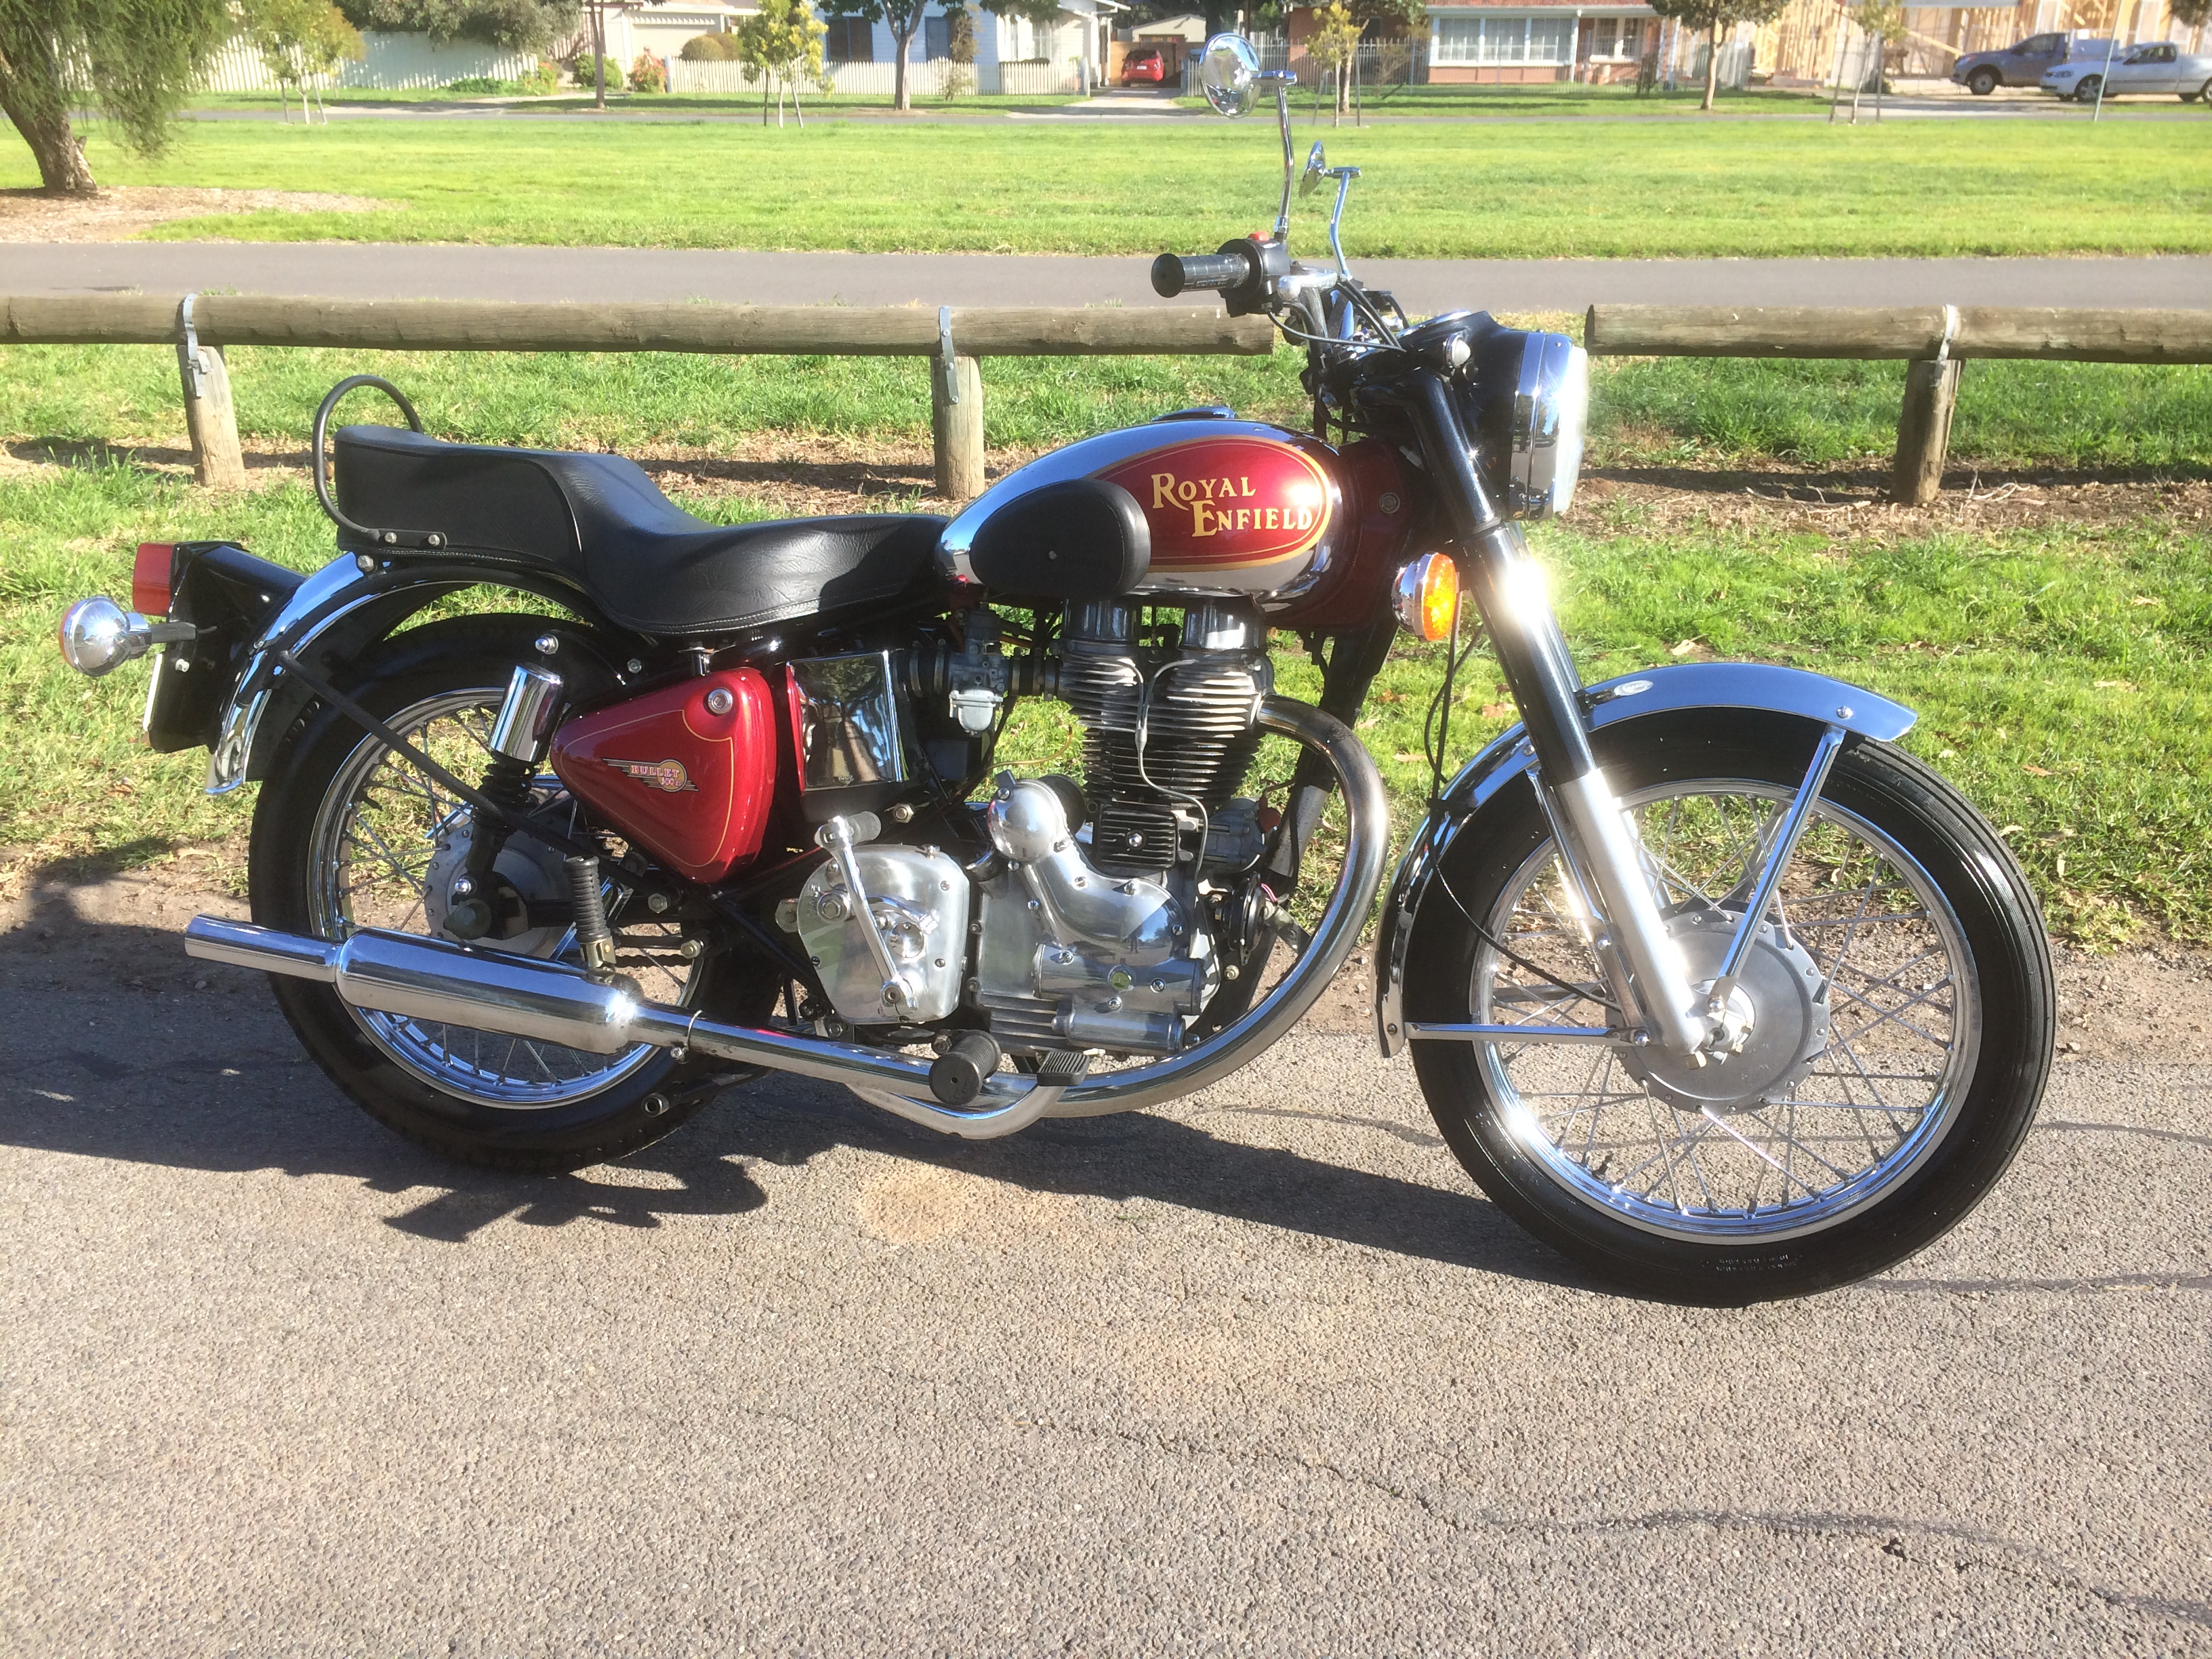 Royal Enfield Bullet 500 Army 1997 images #158636